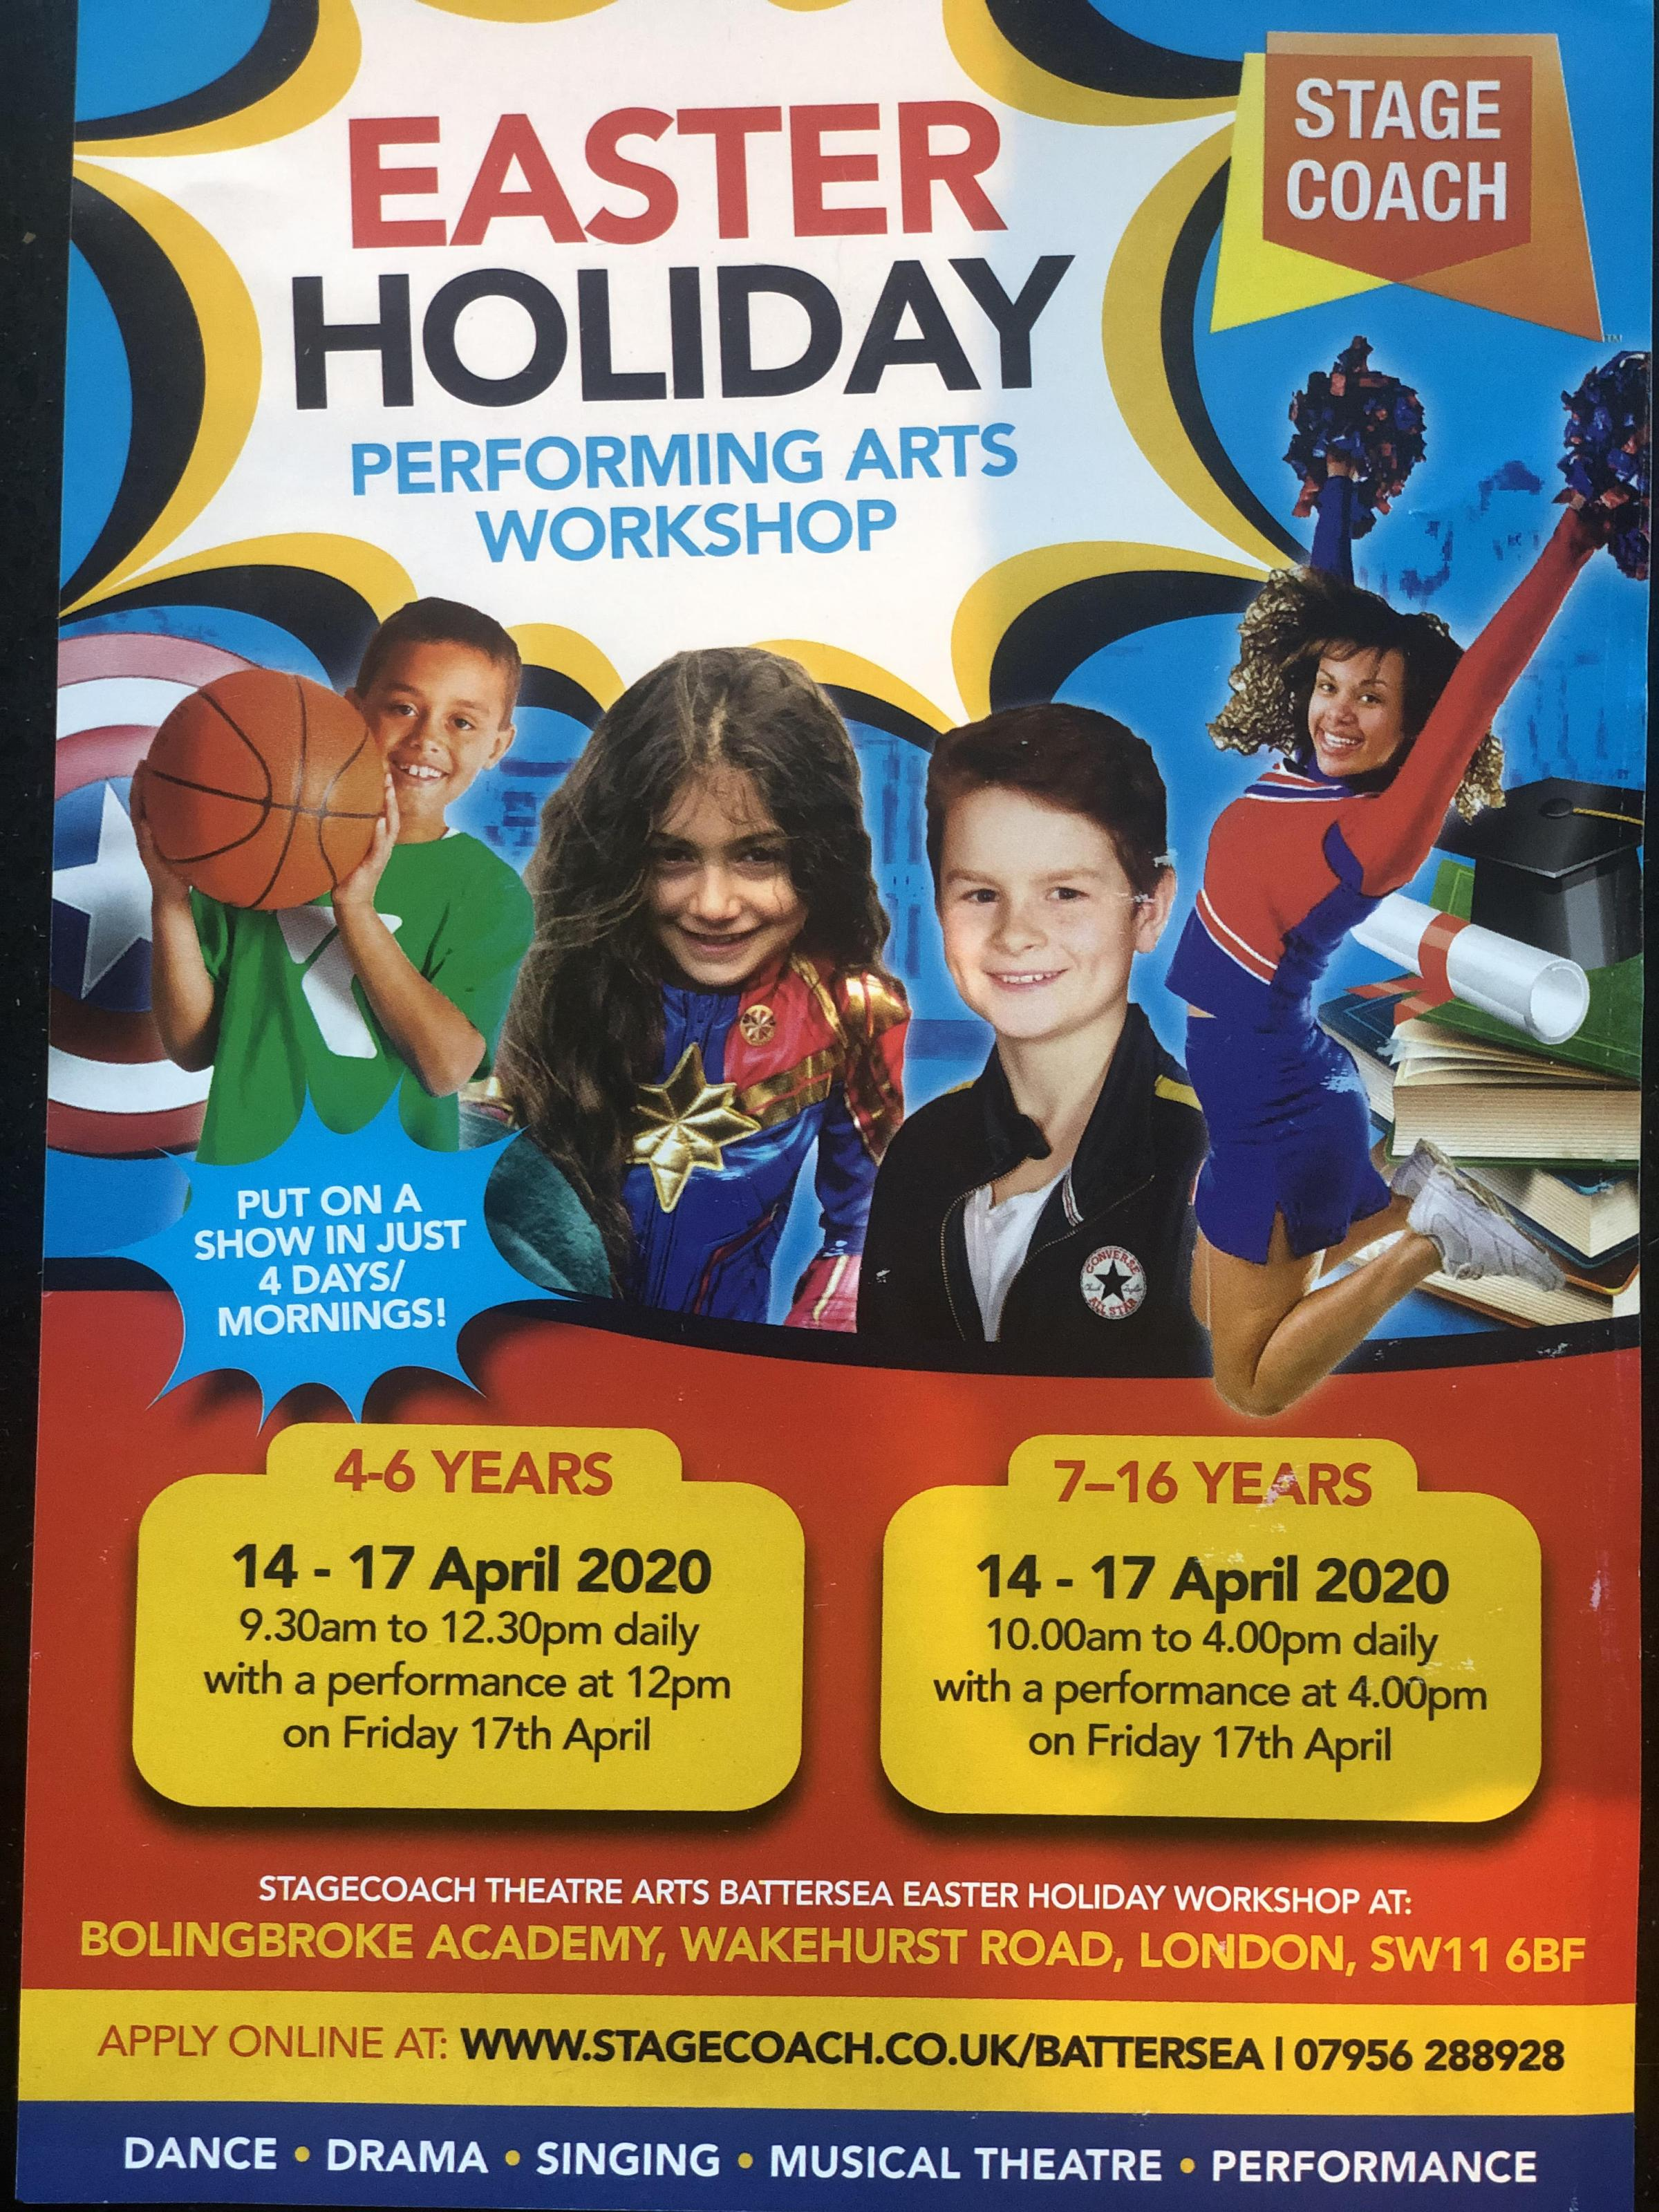 Stagecoach Performing Arts Easter Holiday Workshop